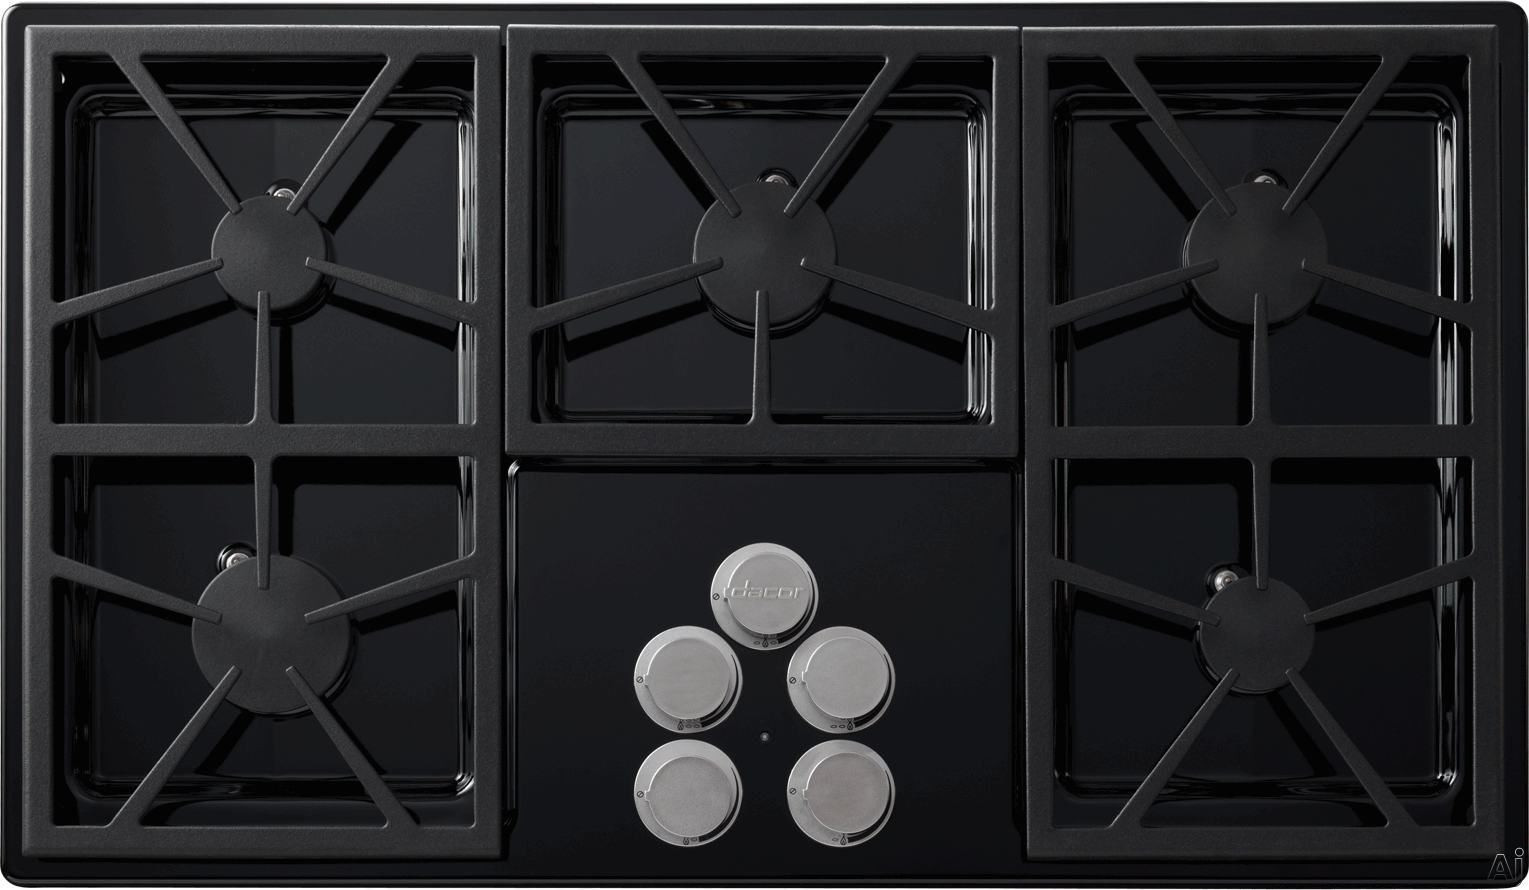 Dacor Distinctive DTCT365GBLPH 36 Inch Gas Cooktop with 5 Sealed Burners, 56,000 BTUs, Perma-Flame Technology, SmartFlame Technology, Continuous Grates, Spill Basin with PermaClean Finish and Downdraft Compatible: Black, Liquid Propane, High-Altitude